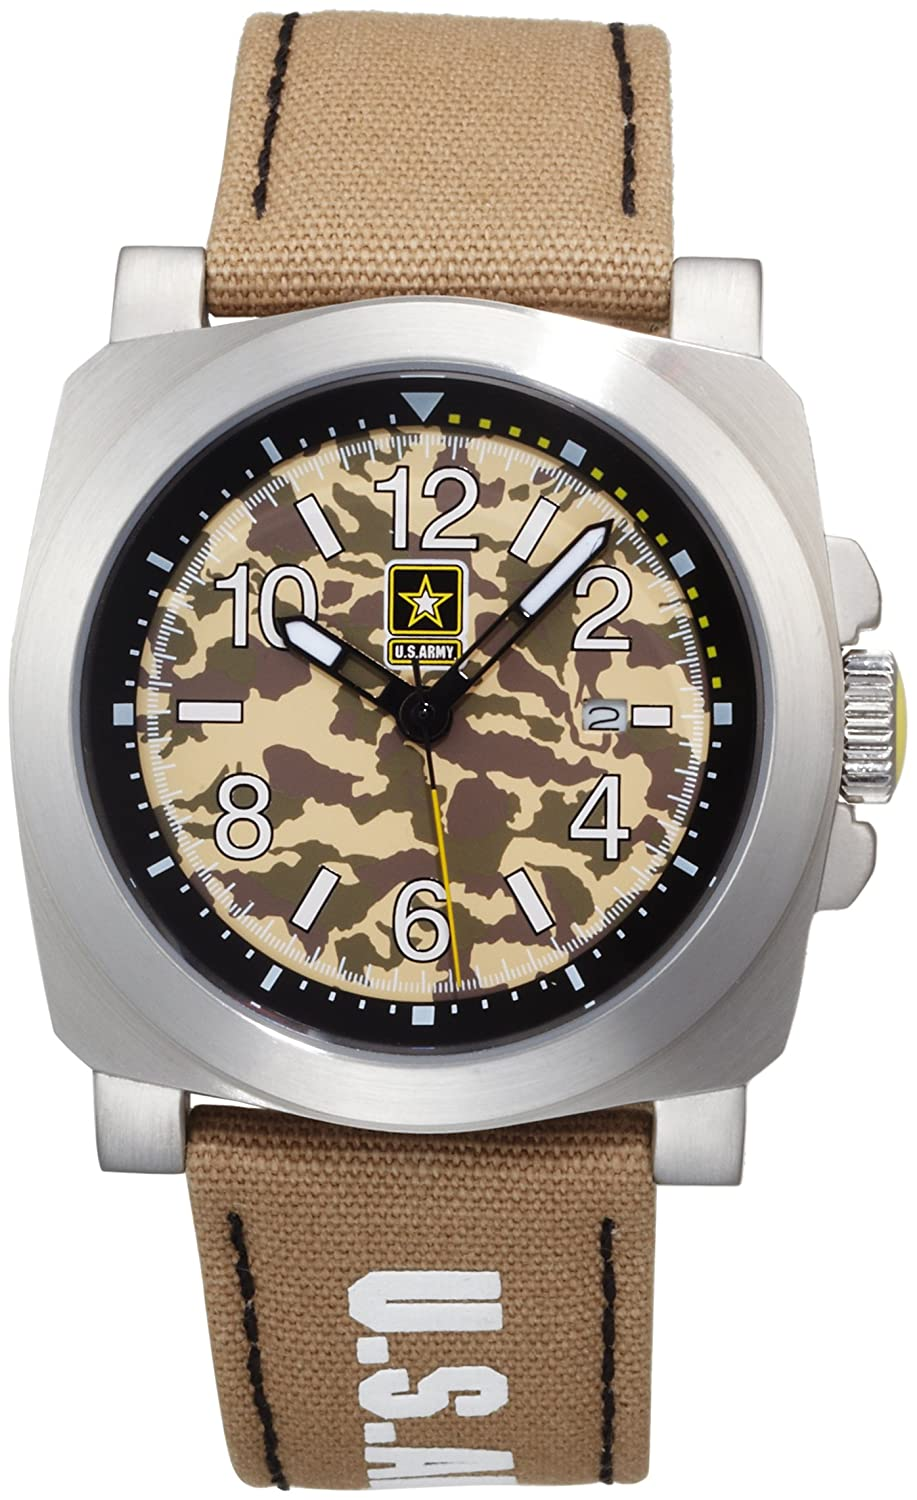 US Army Men 's Inf – 818 Infantry MilitiaステンレススチールWatch B0032AMV7A